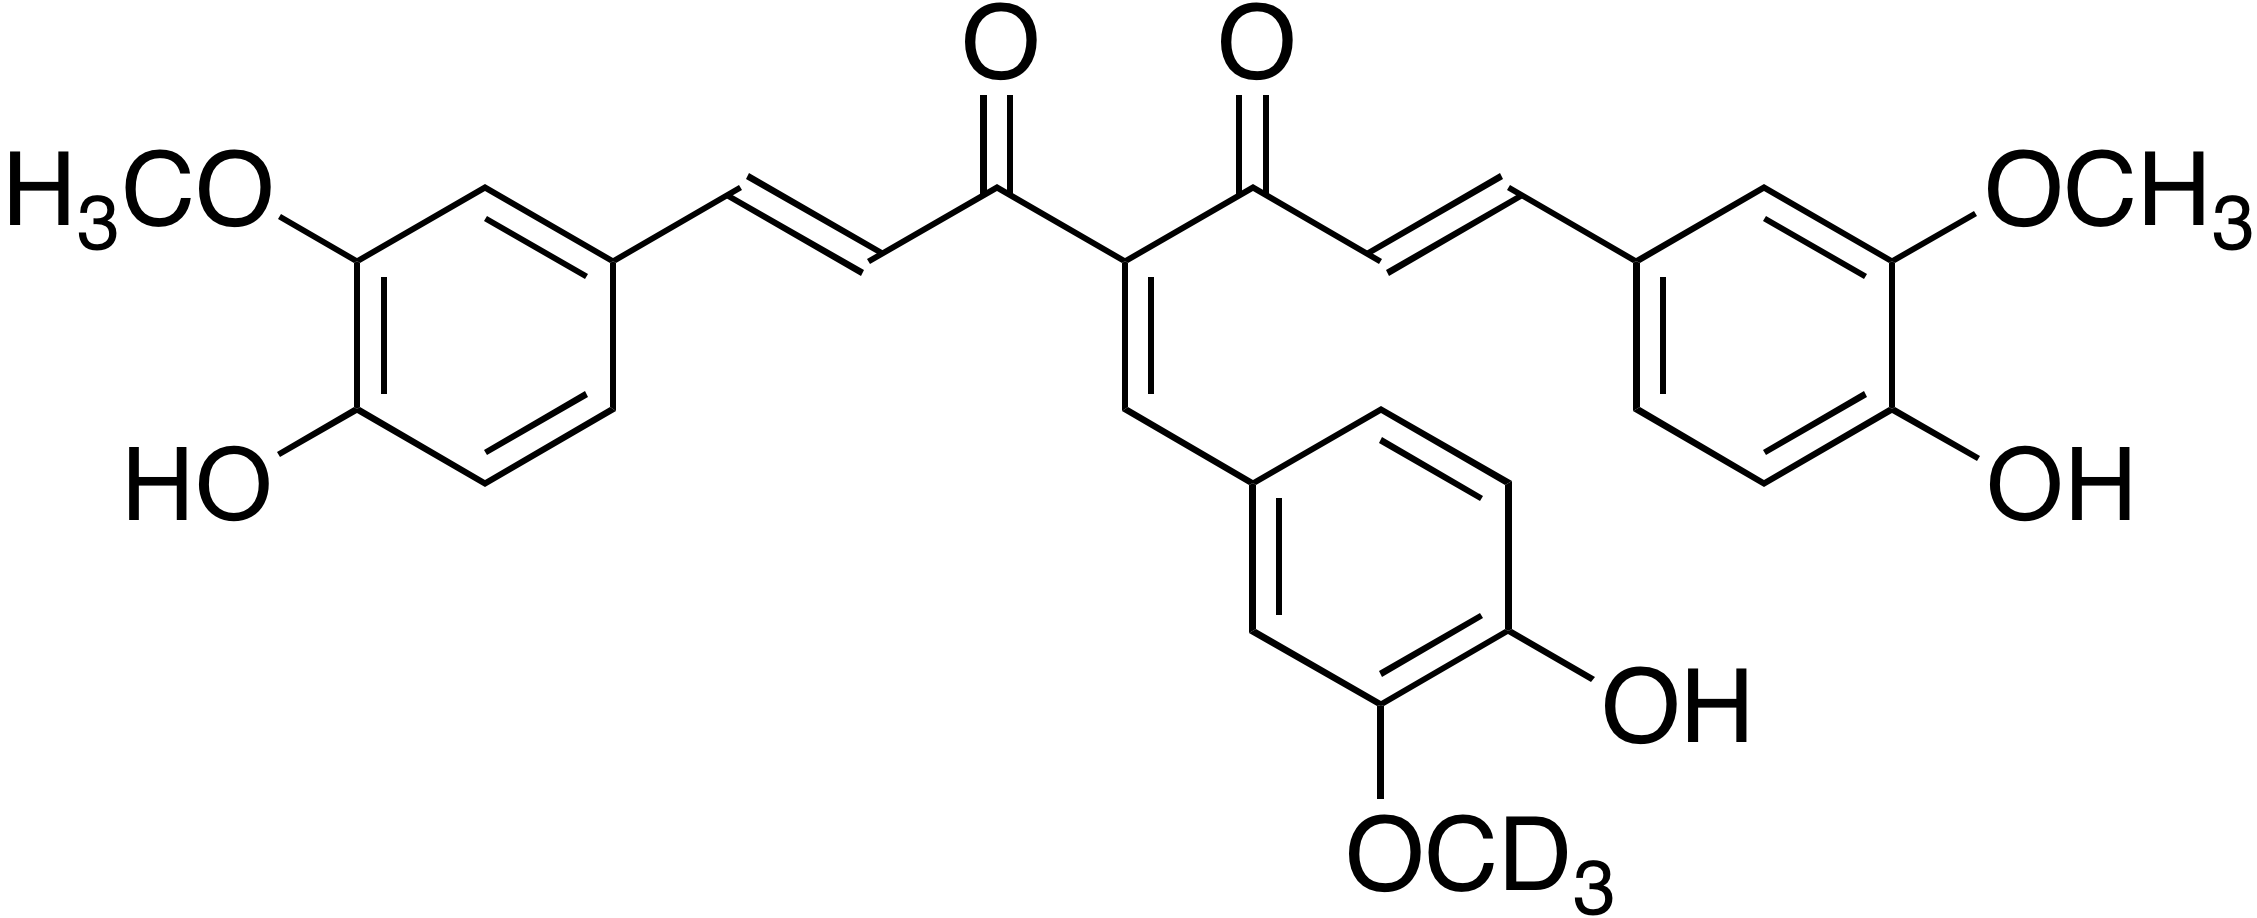 4-(4-Hydroxy-3-methoxy-d<sub>3</sub>-benzylidene)curcumin